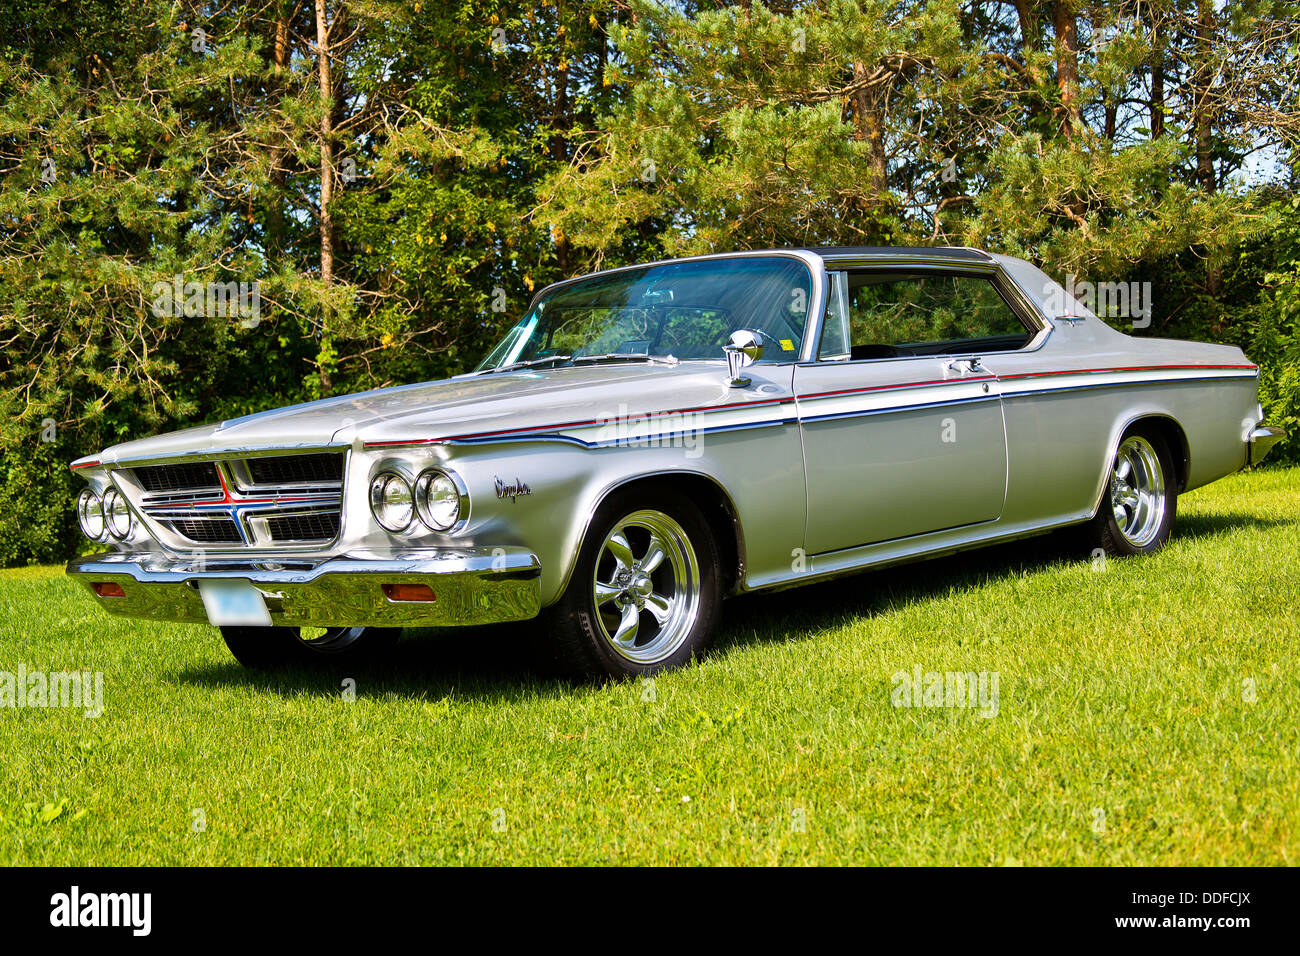 1964 chrysler 300 silver edition stock photo royalty free. Black Bedroom Furniture Sets. Home Design Ideas